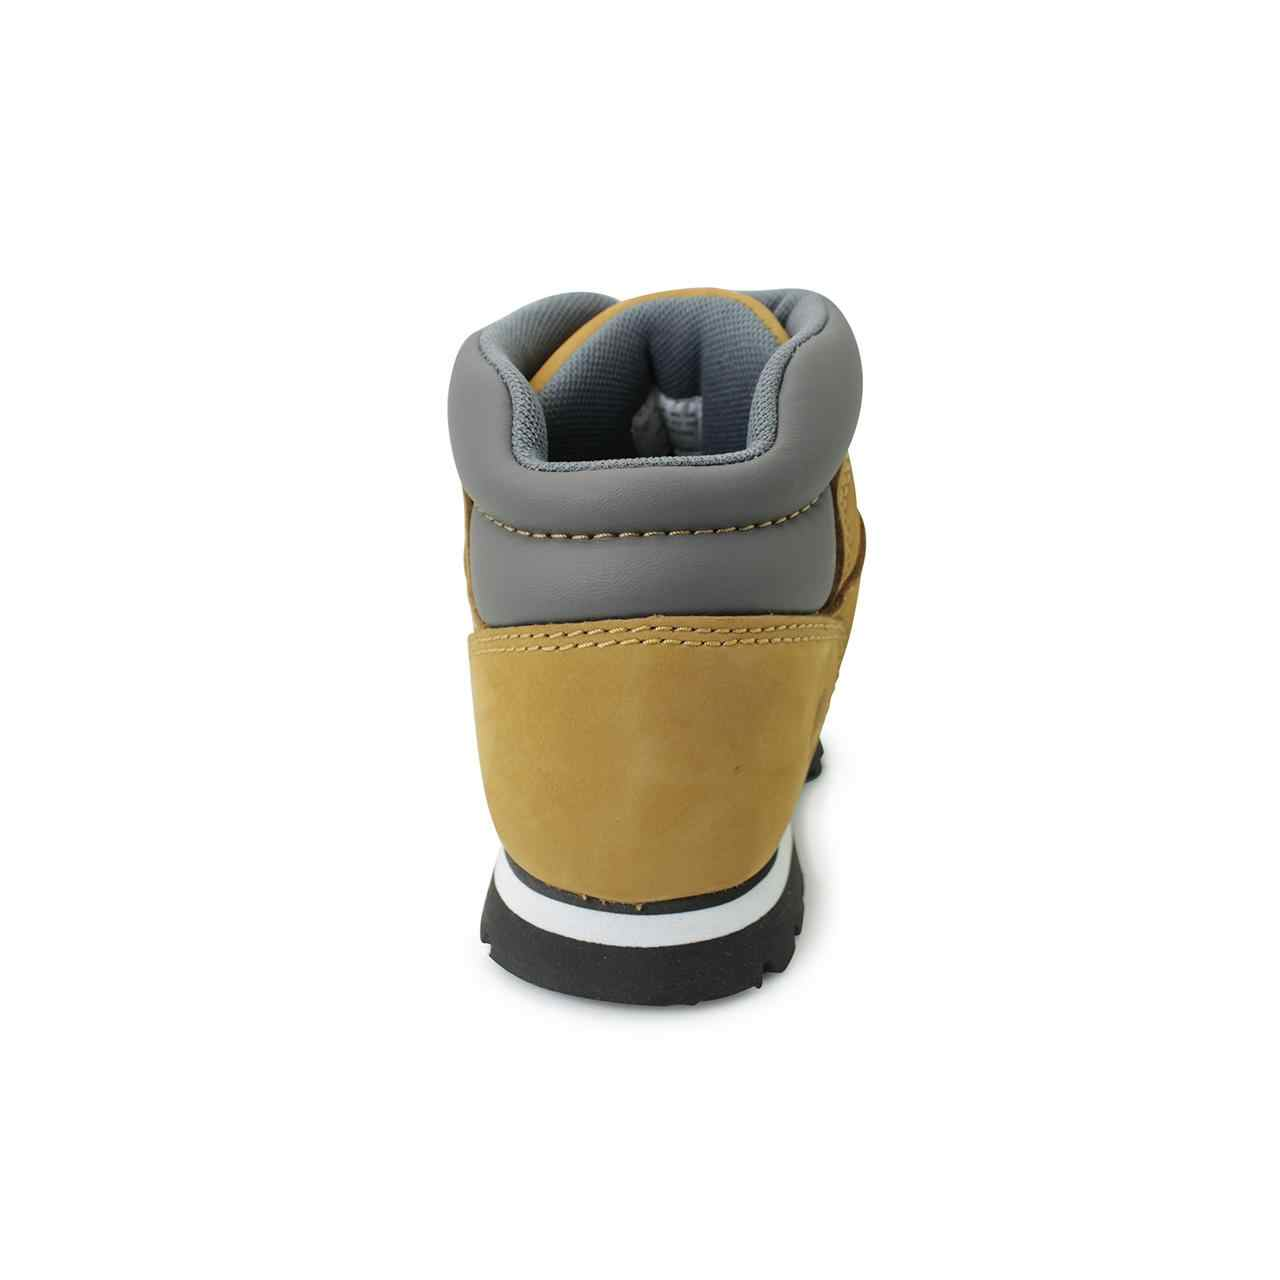 TIMBERLAND UNISEX INFANT SKIN BOOTS